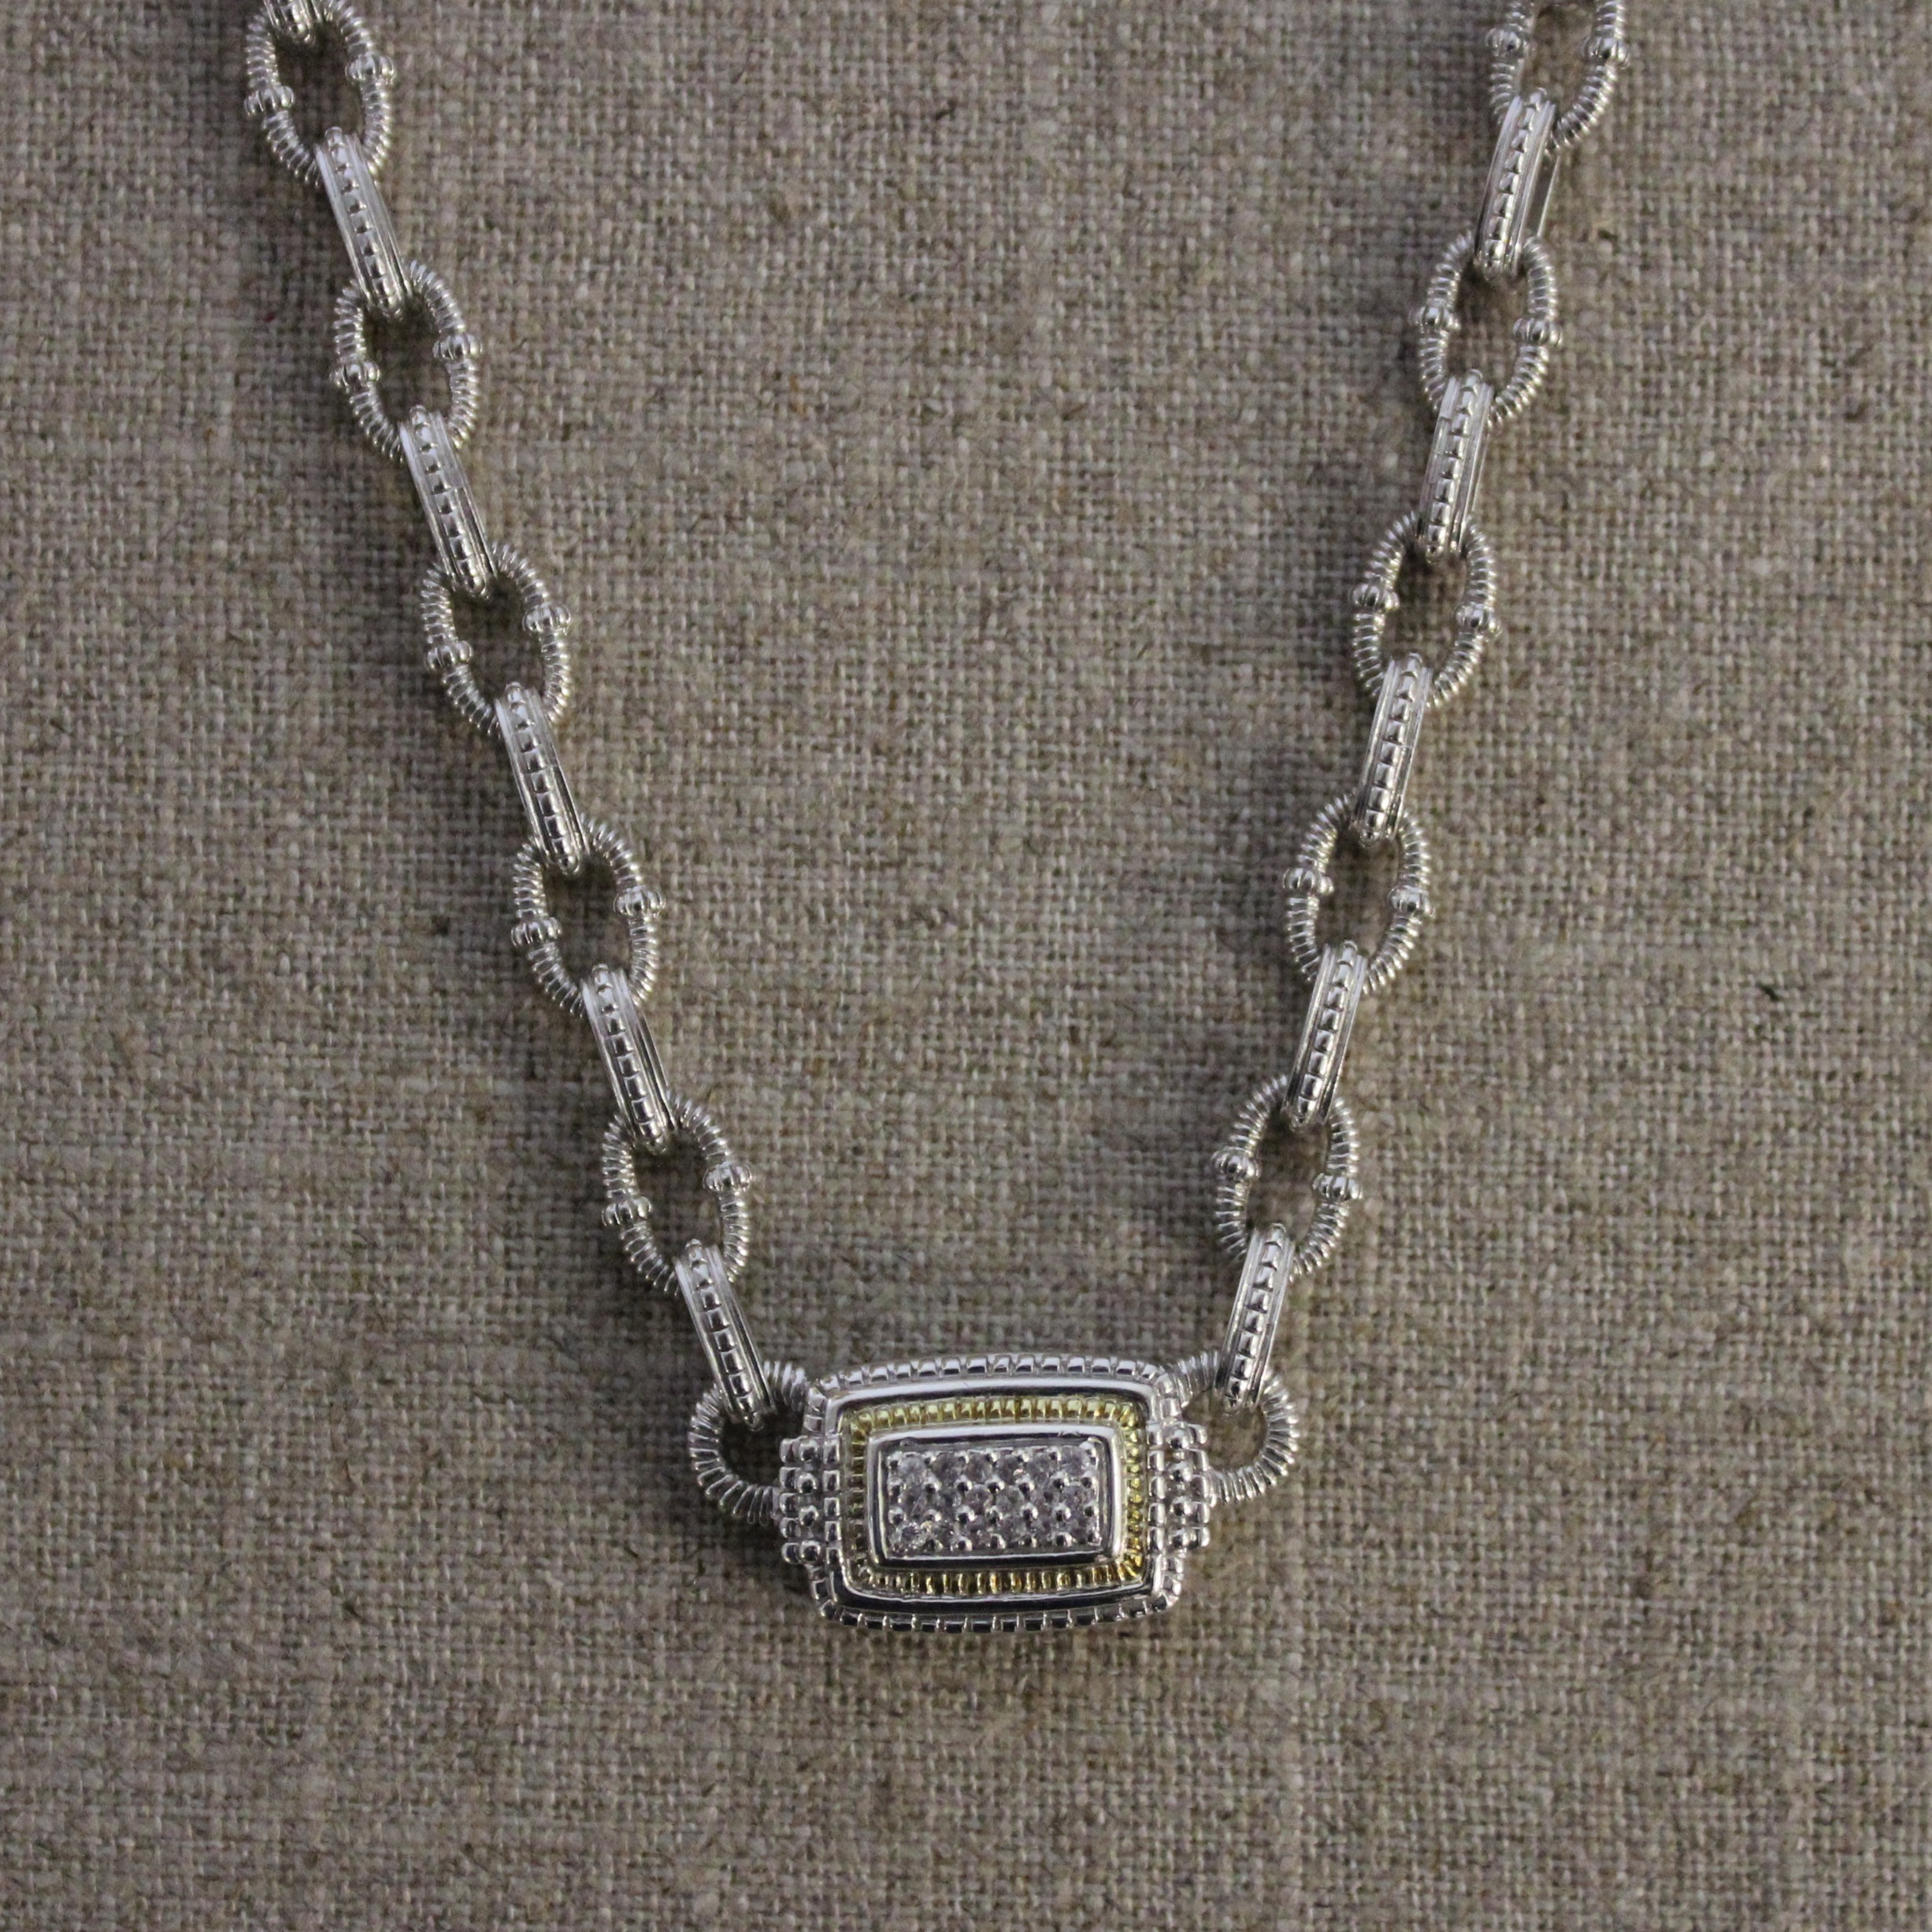 VINTAGE STERLING SILVER AND 18K YELLOW GOLD JUDITH RIPKA NECKALCE